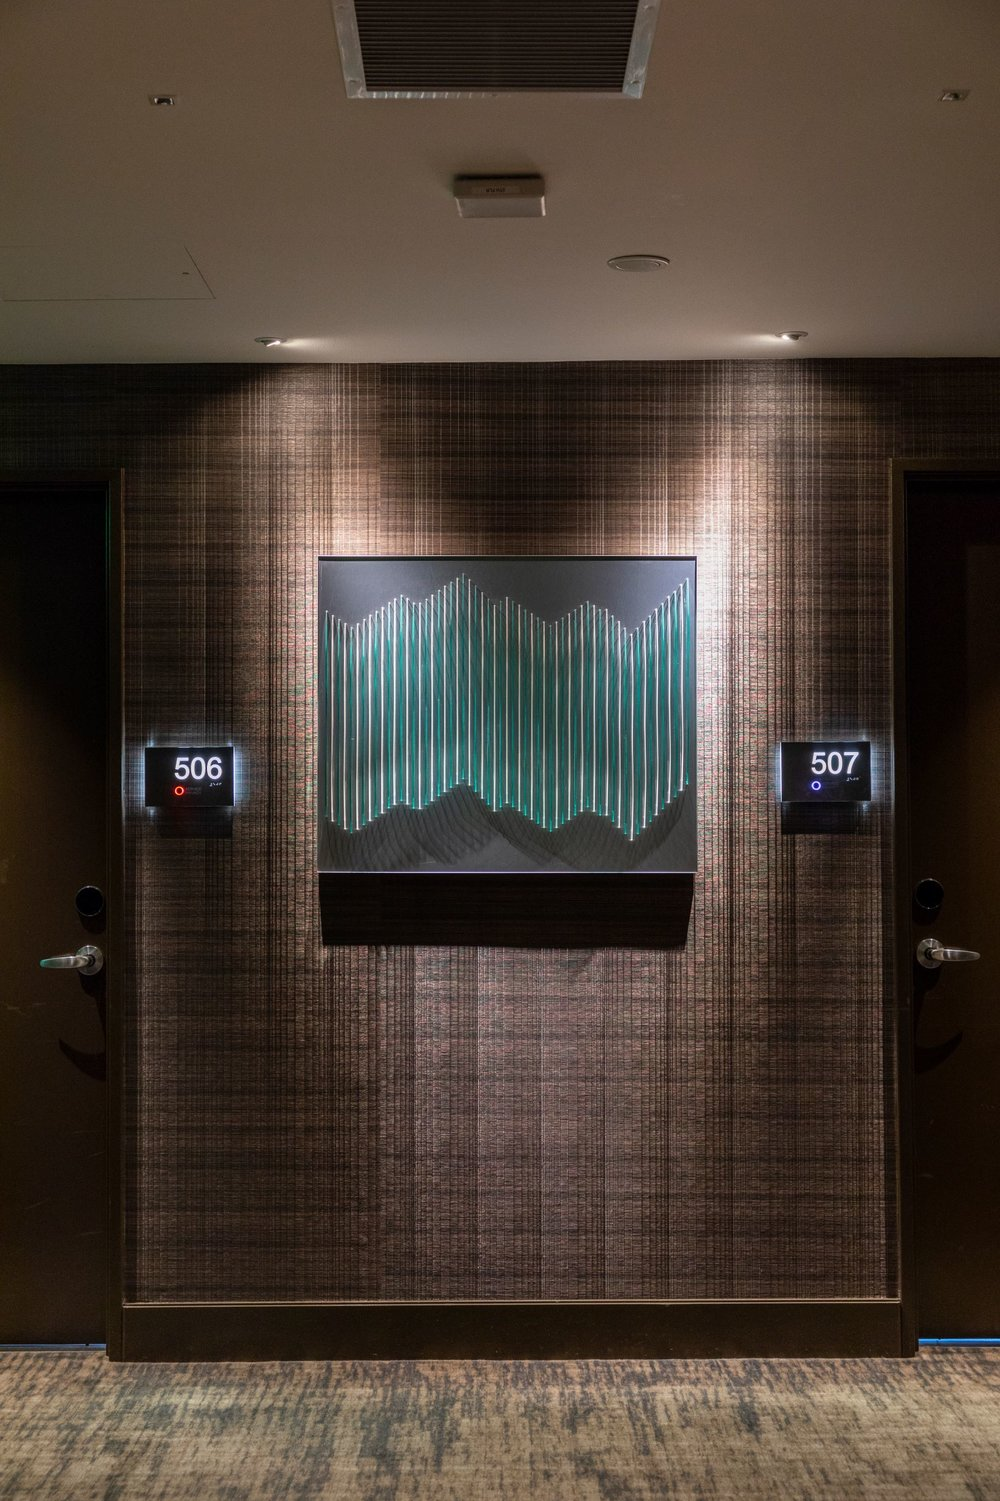 DREAM HOTEL, HOLLYWOOD - Curated by Indiewalls